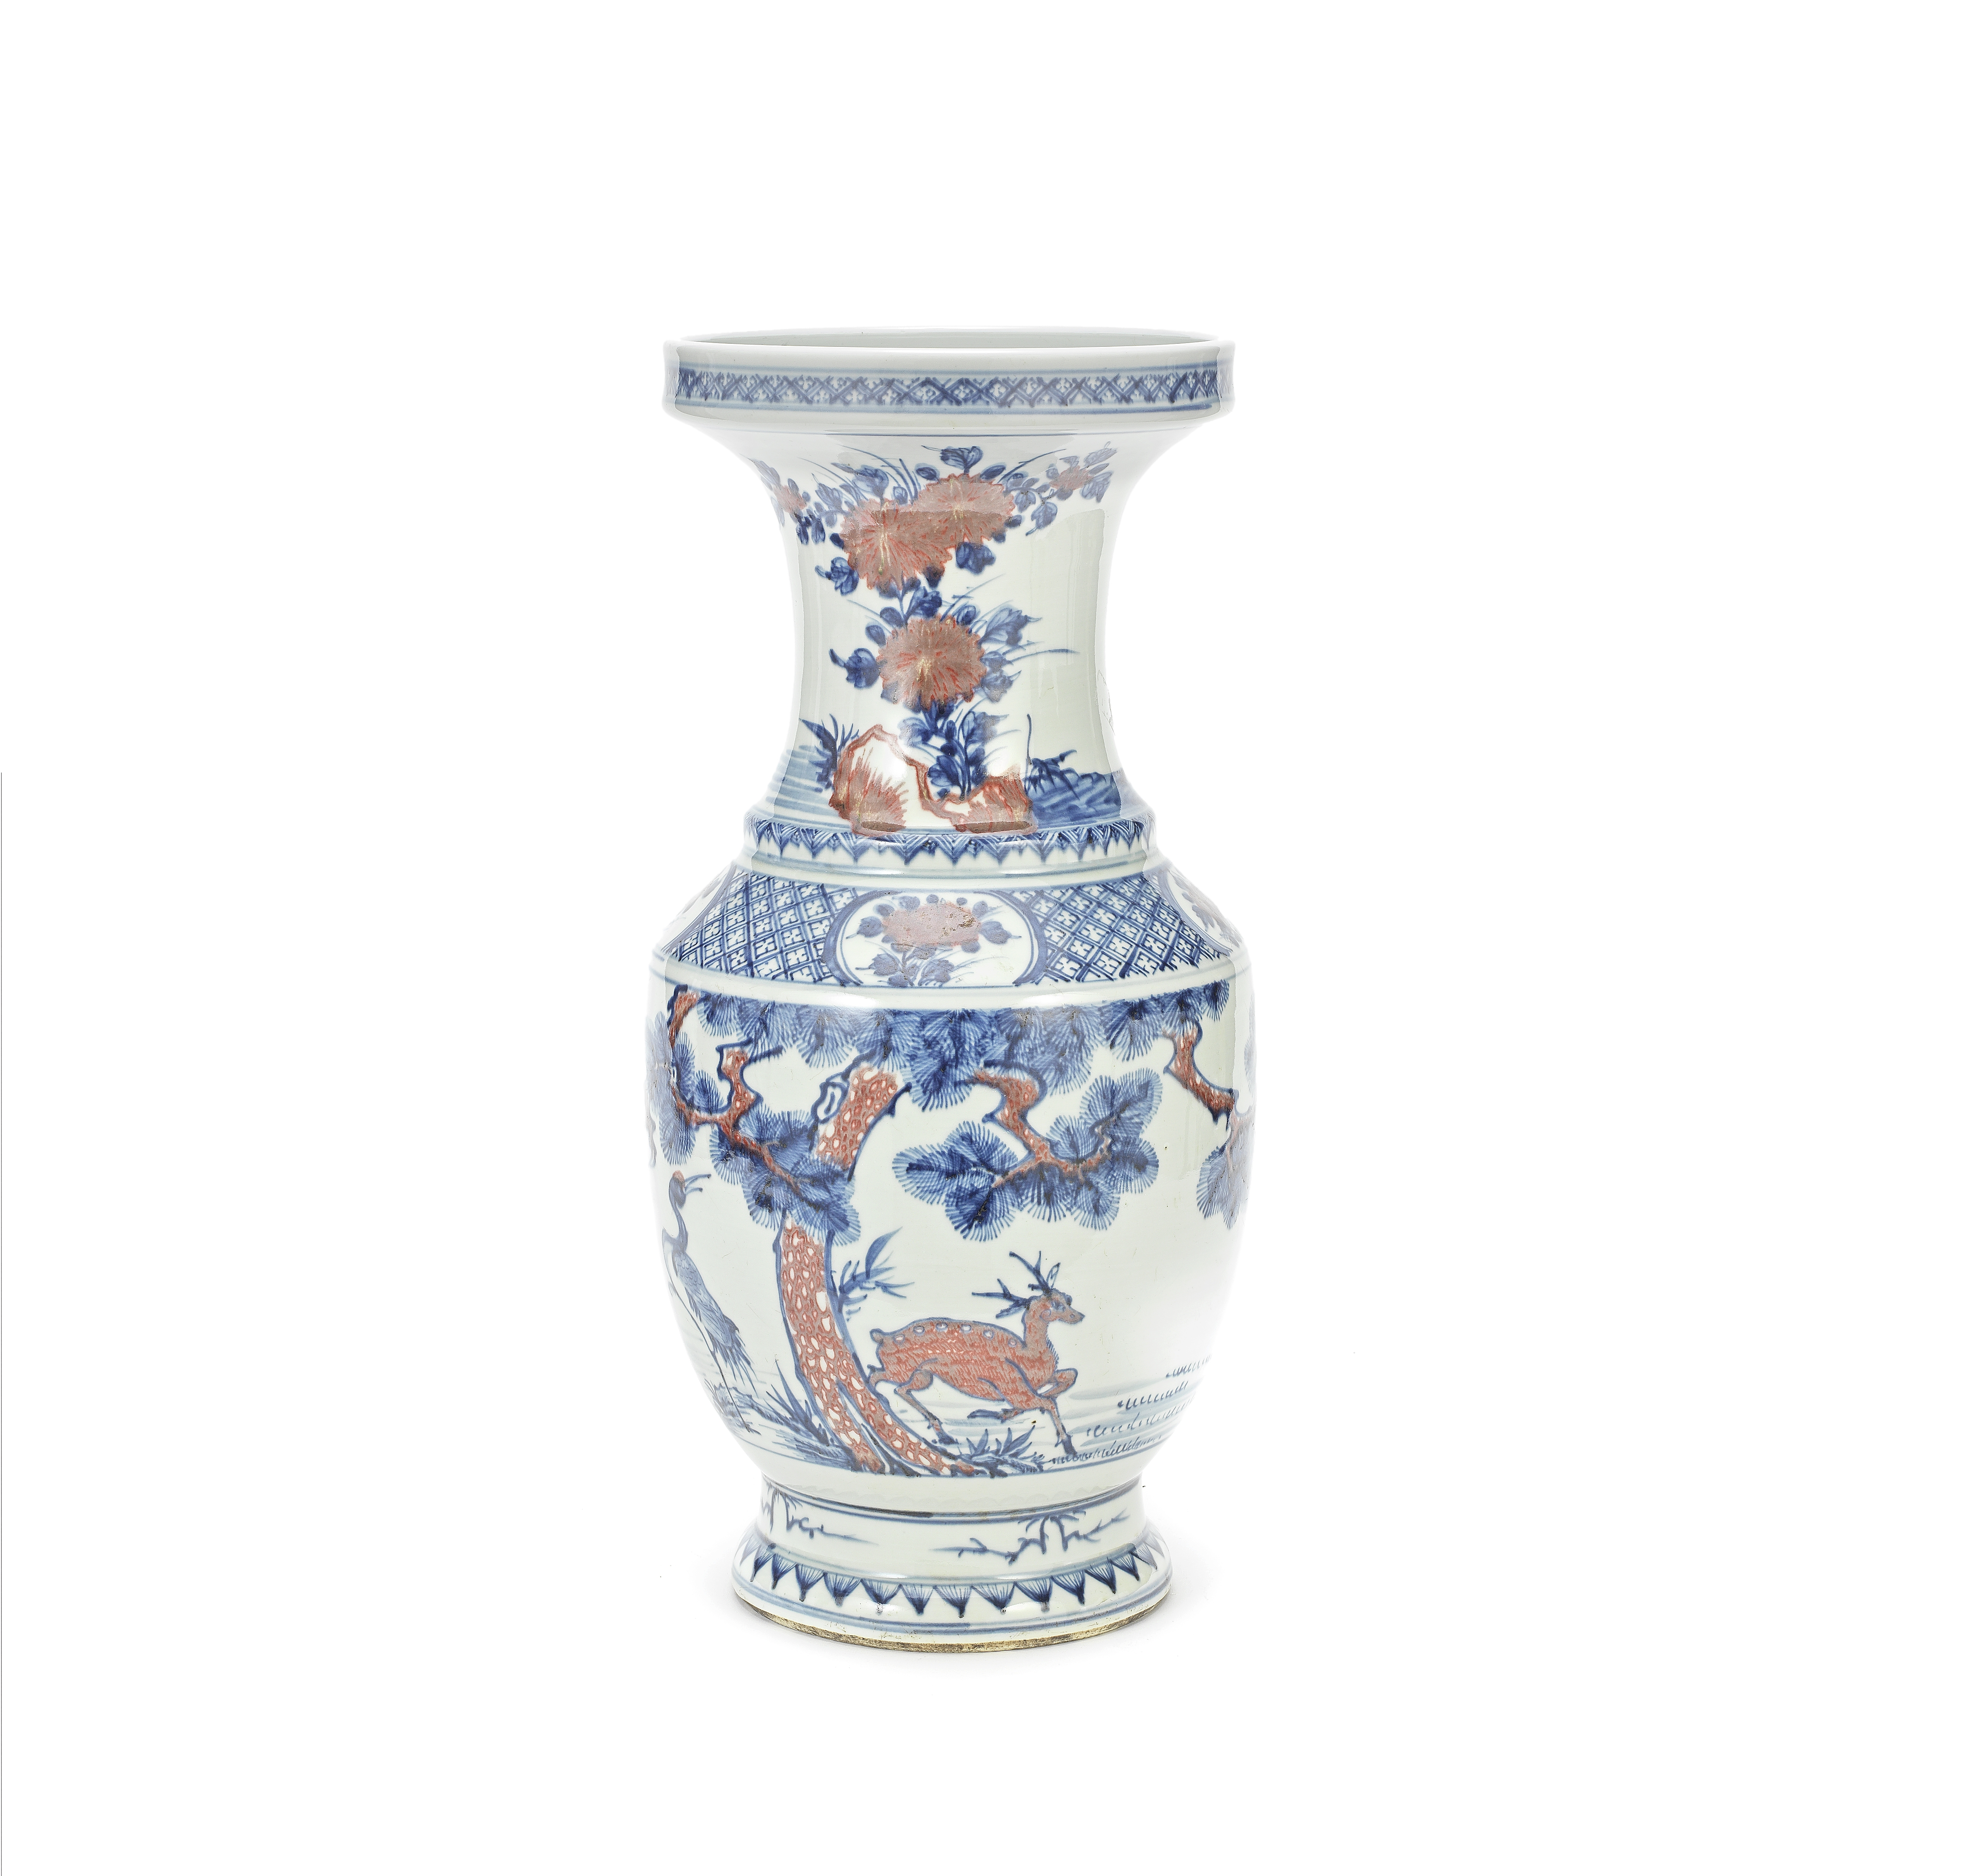 A BLUE AND WHITE AND COPPER-RED BALUSTER VASE 18th/19th century